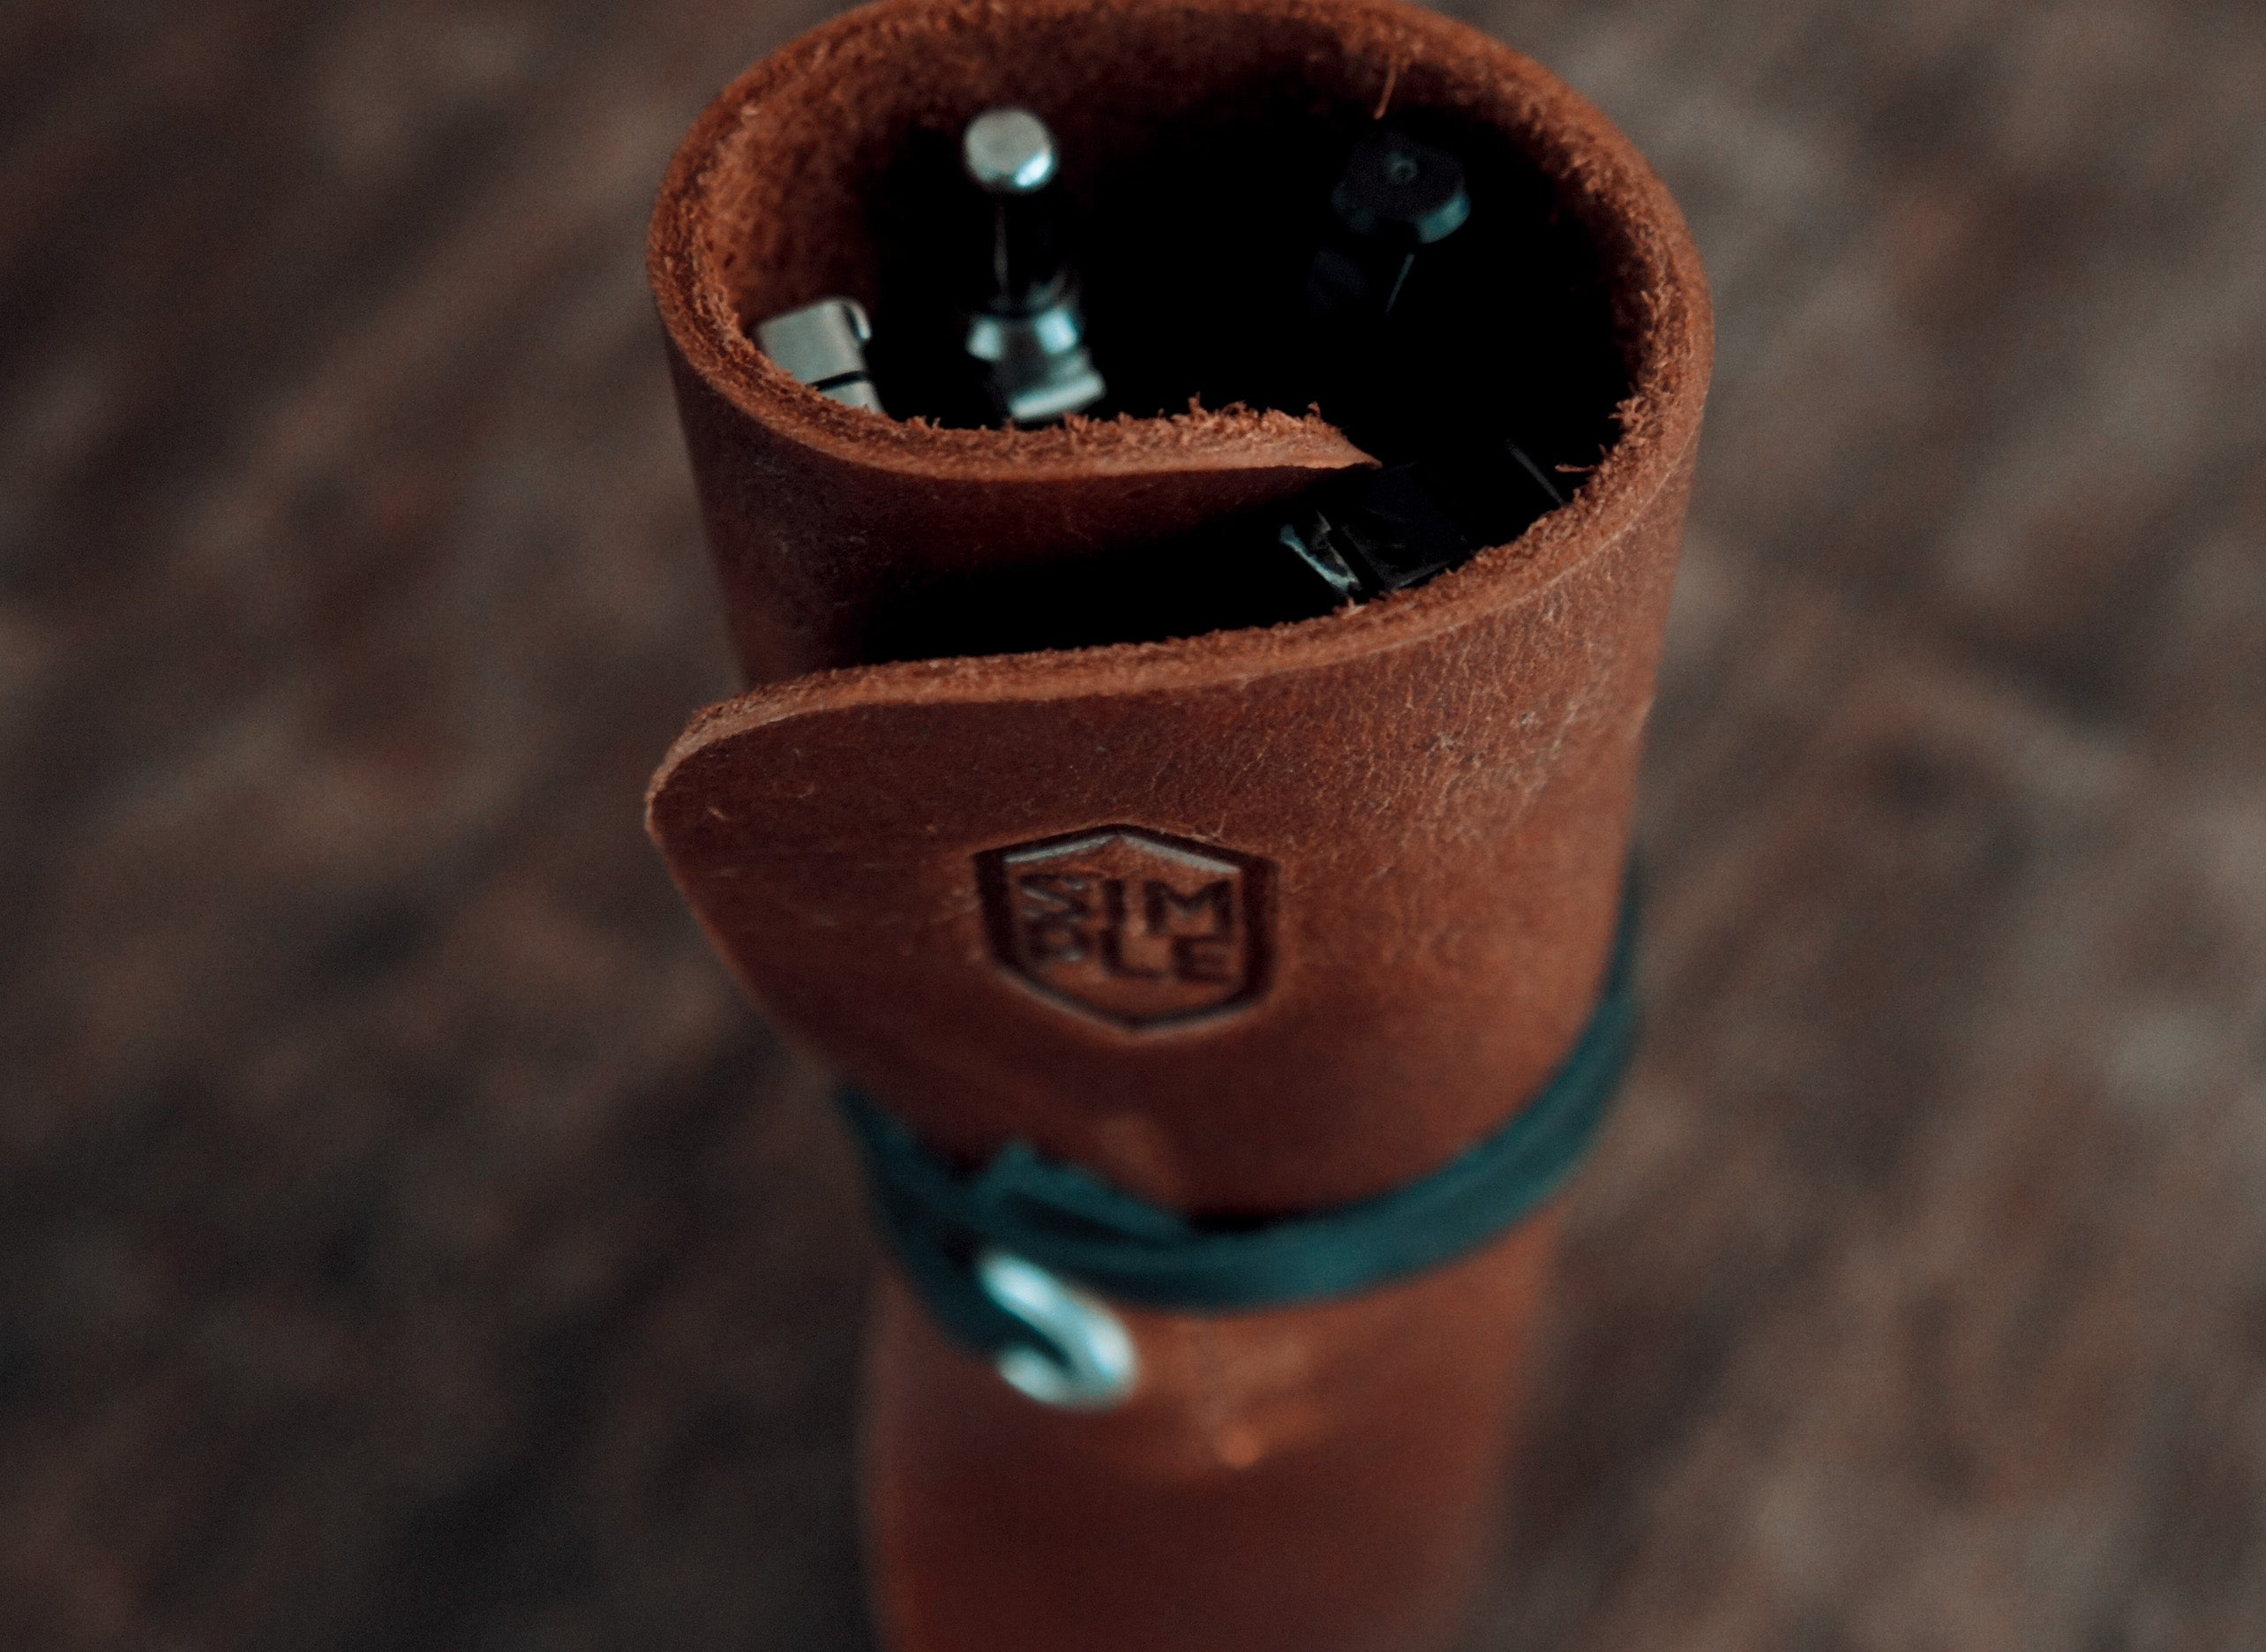 Brown leather pen wrap, rolled up with black strap